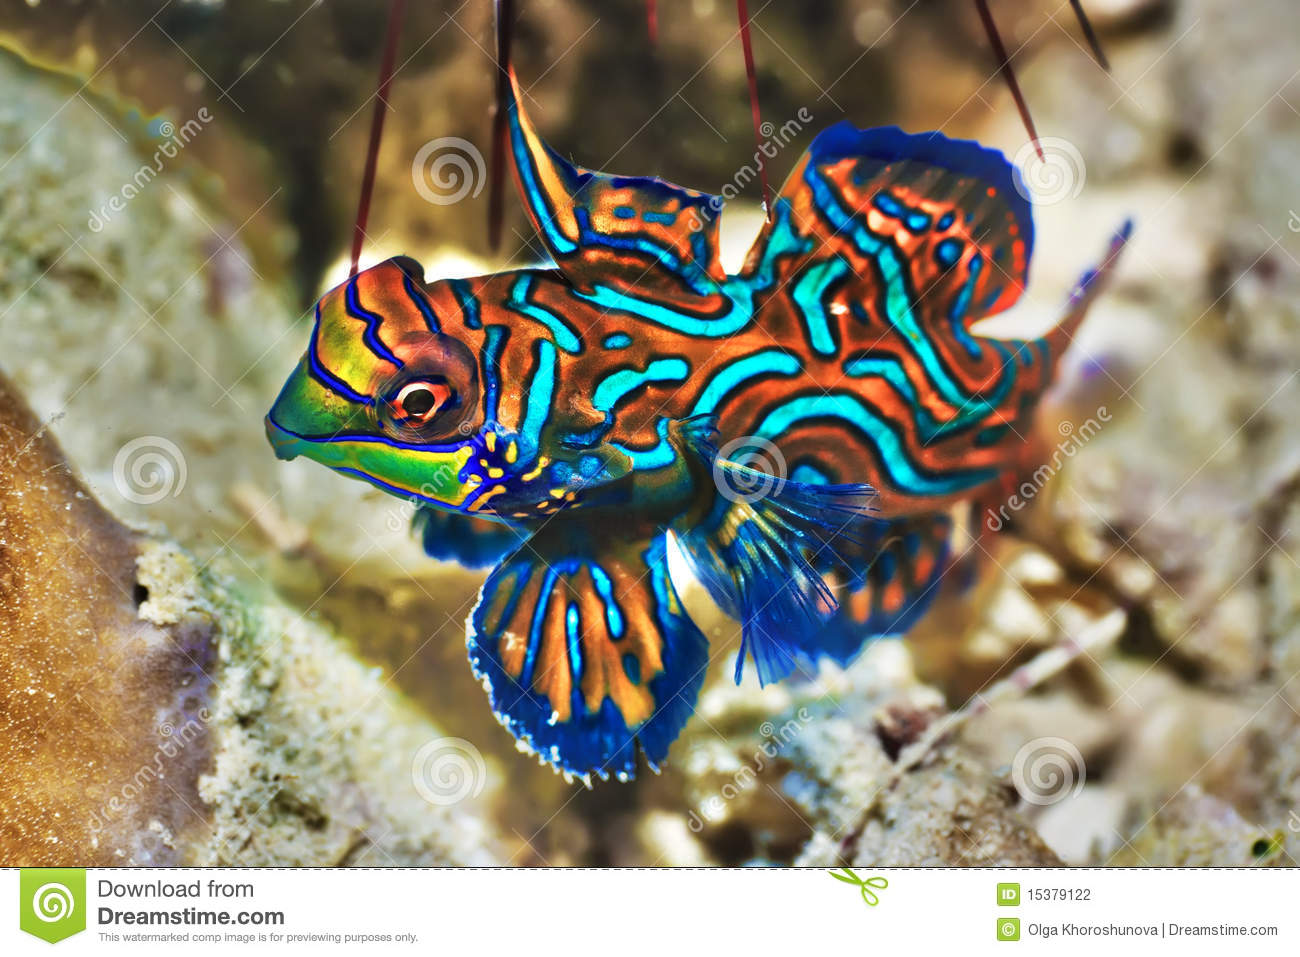 Poissons tropicaux mandarinfish photo stock image 15379122 for Poisson tropicaux